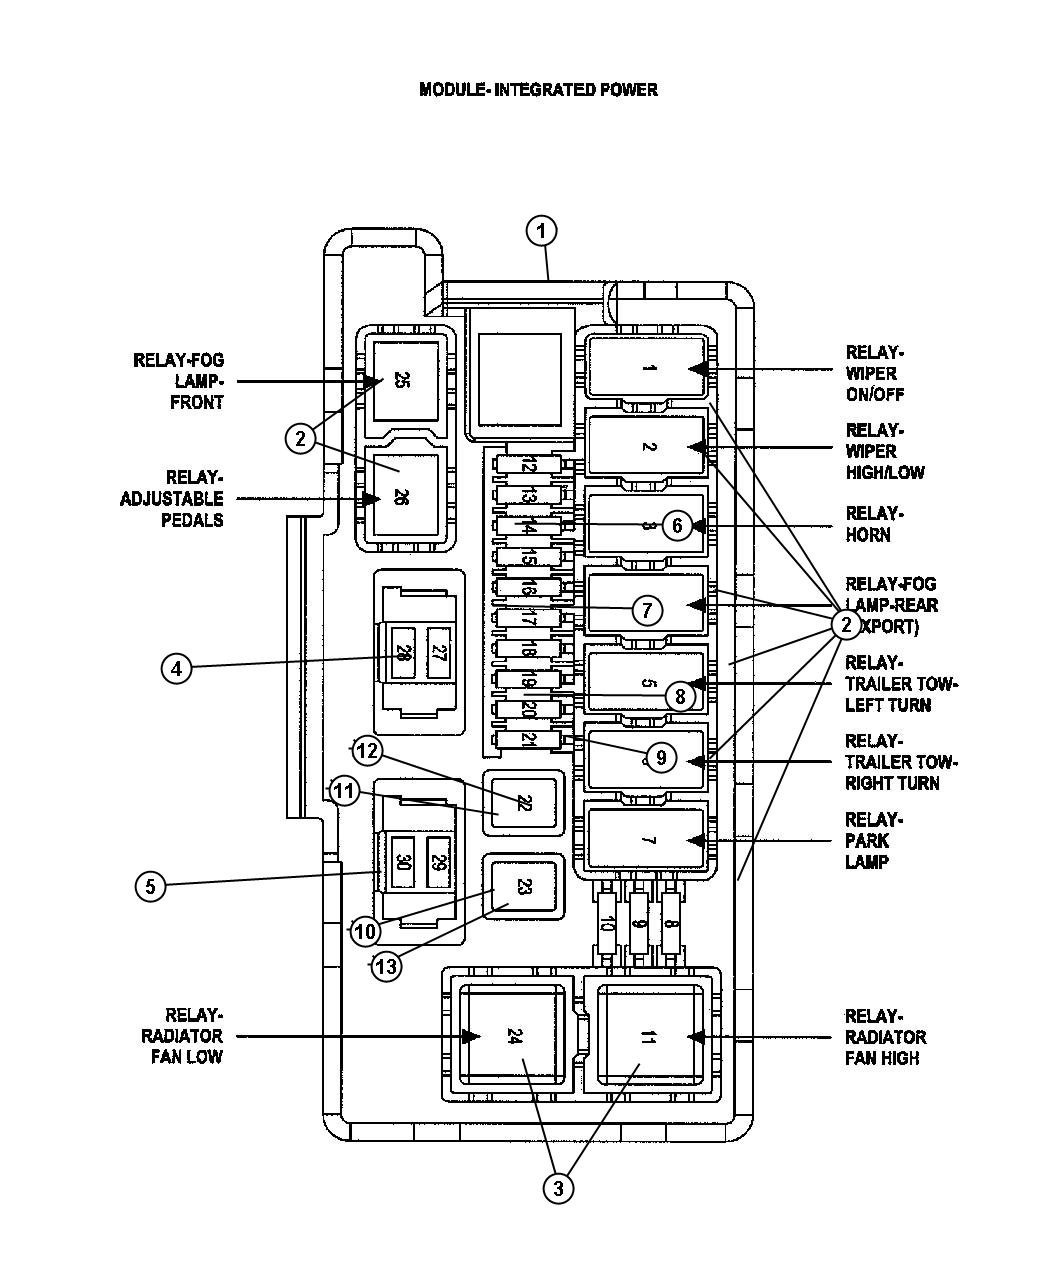 hight resolution of i2163577 jeep stereo wiring diagram jeep free wiring diagrams 2006 jeep commander trailer wiring diagram at